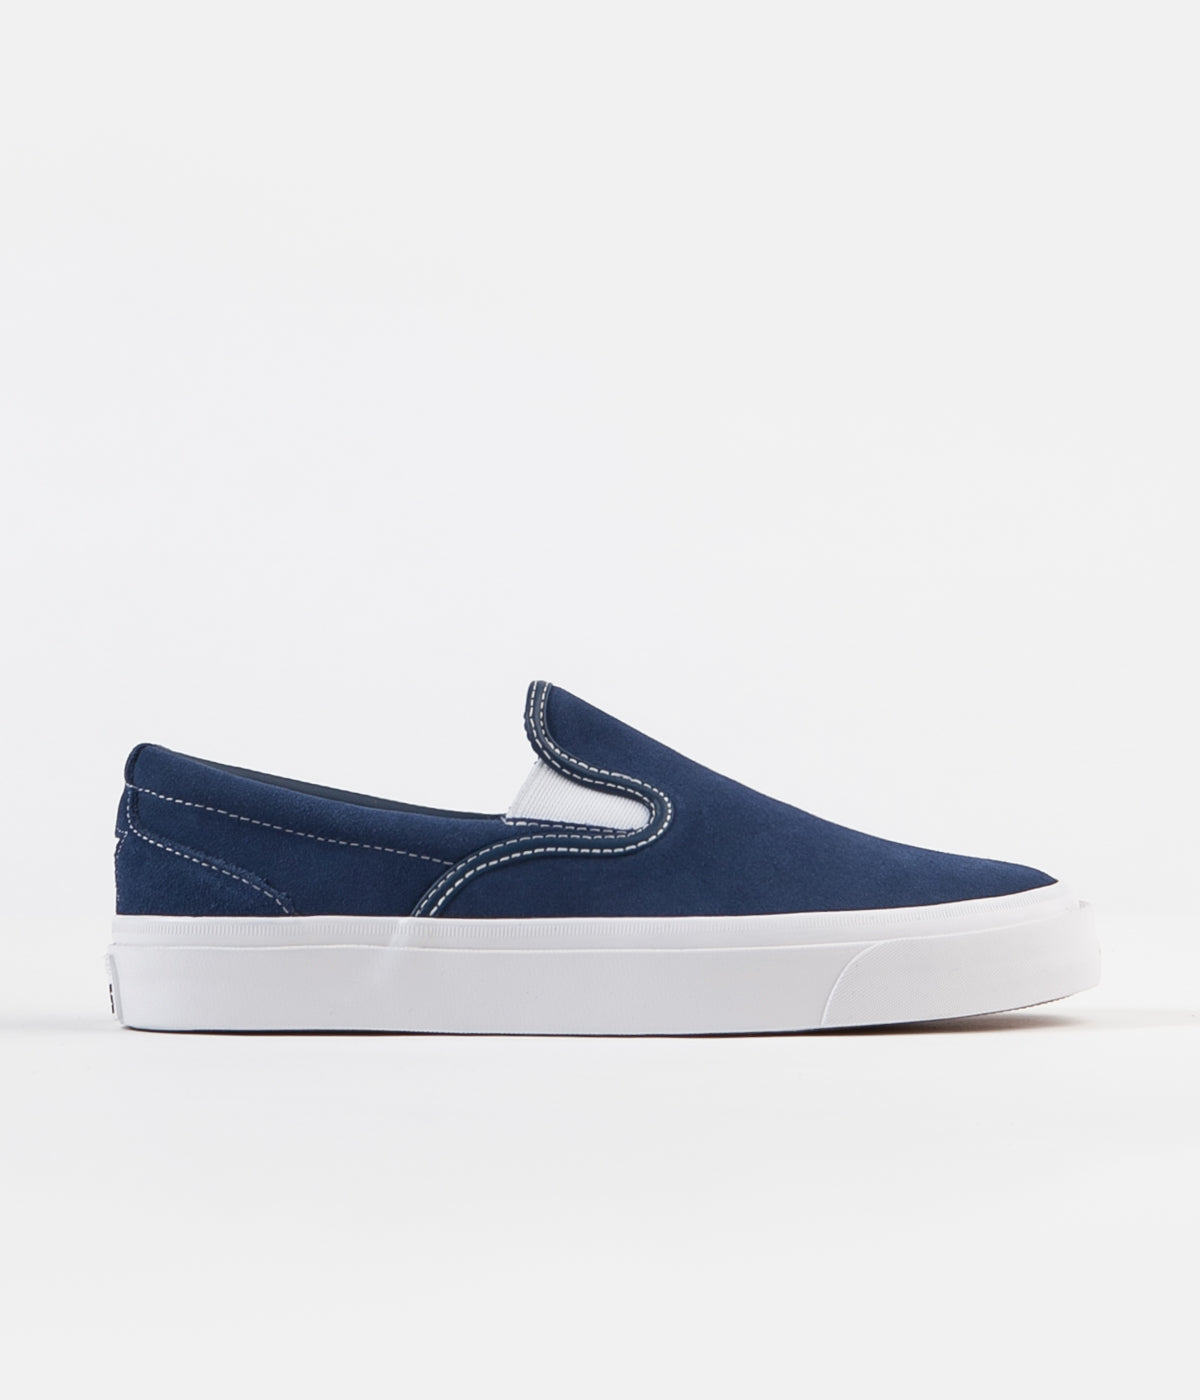 c97745076a5b ... Converse One Star CC Slip On Shoes - Navy   White   White ...